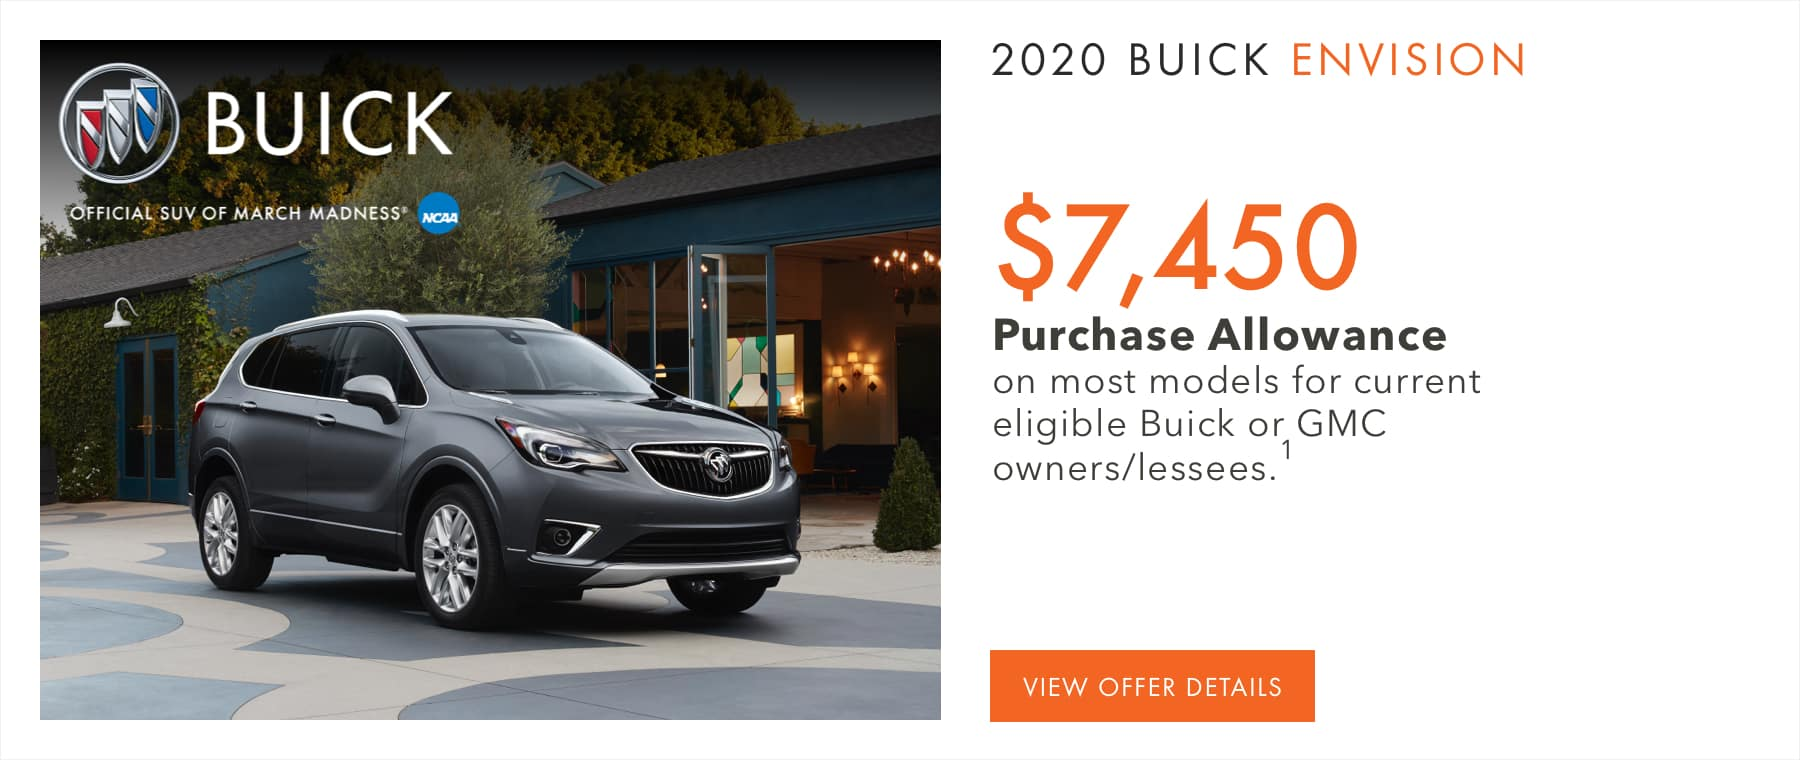 $7,450 Purchase Allowance on most models for current eligible Buick or GMC owners/lessees.1